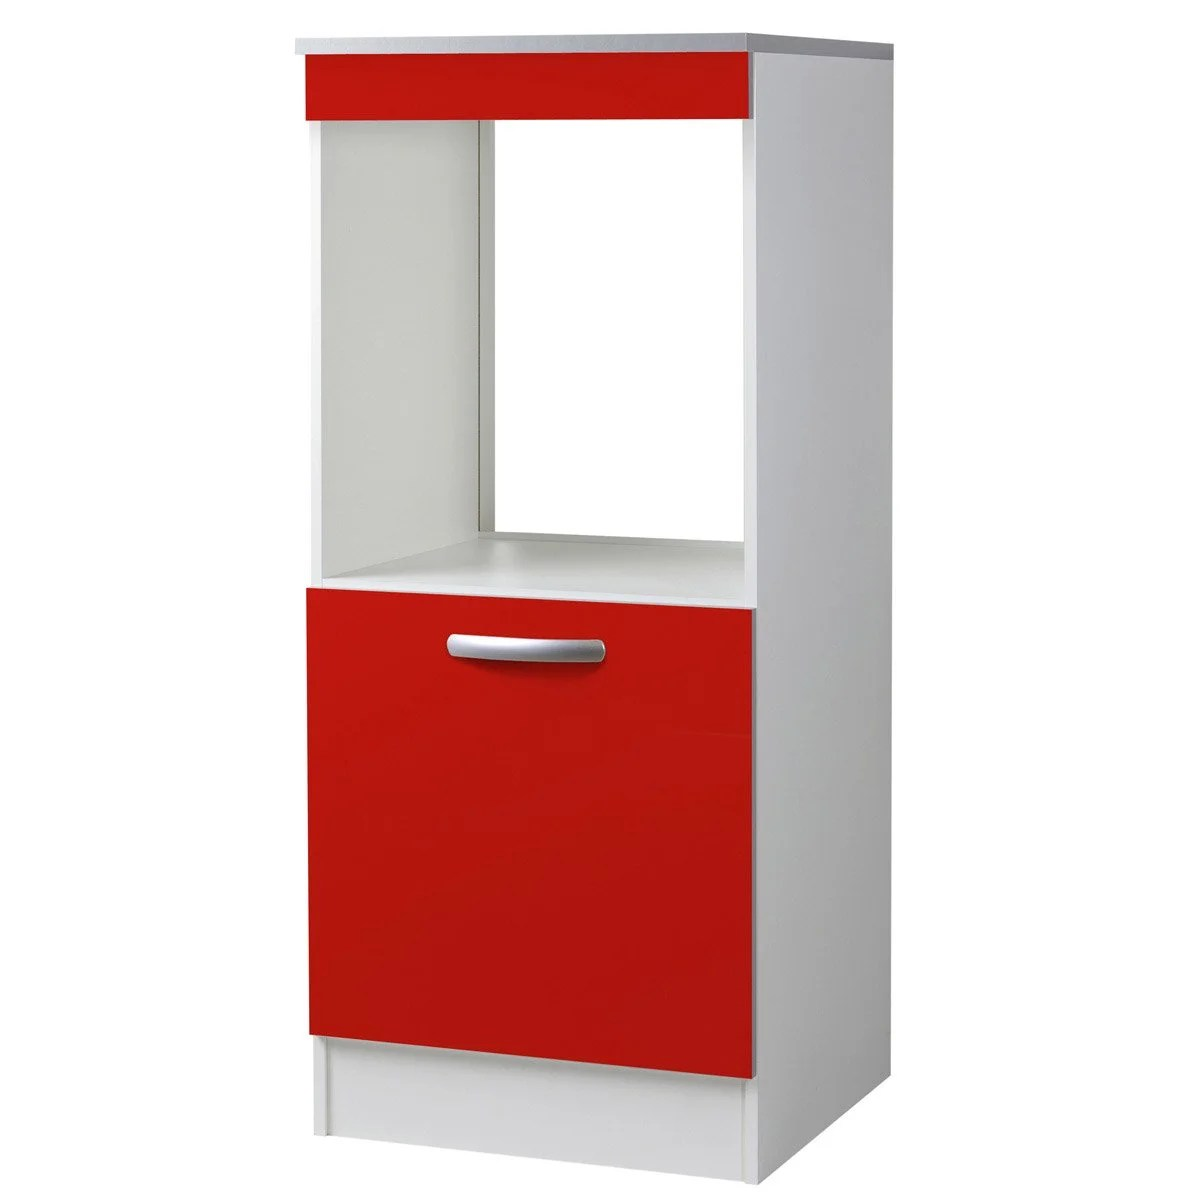 Top Meuble Frigo Encastrable Conforama U Perpignan With